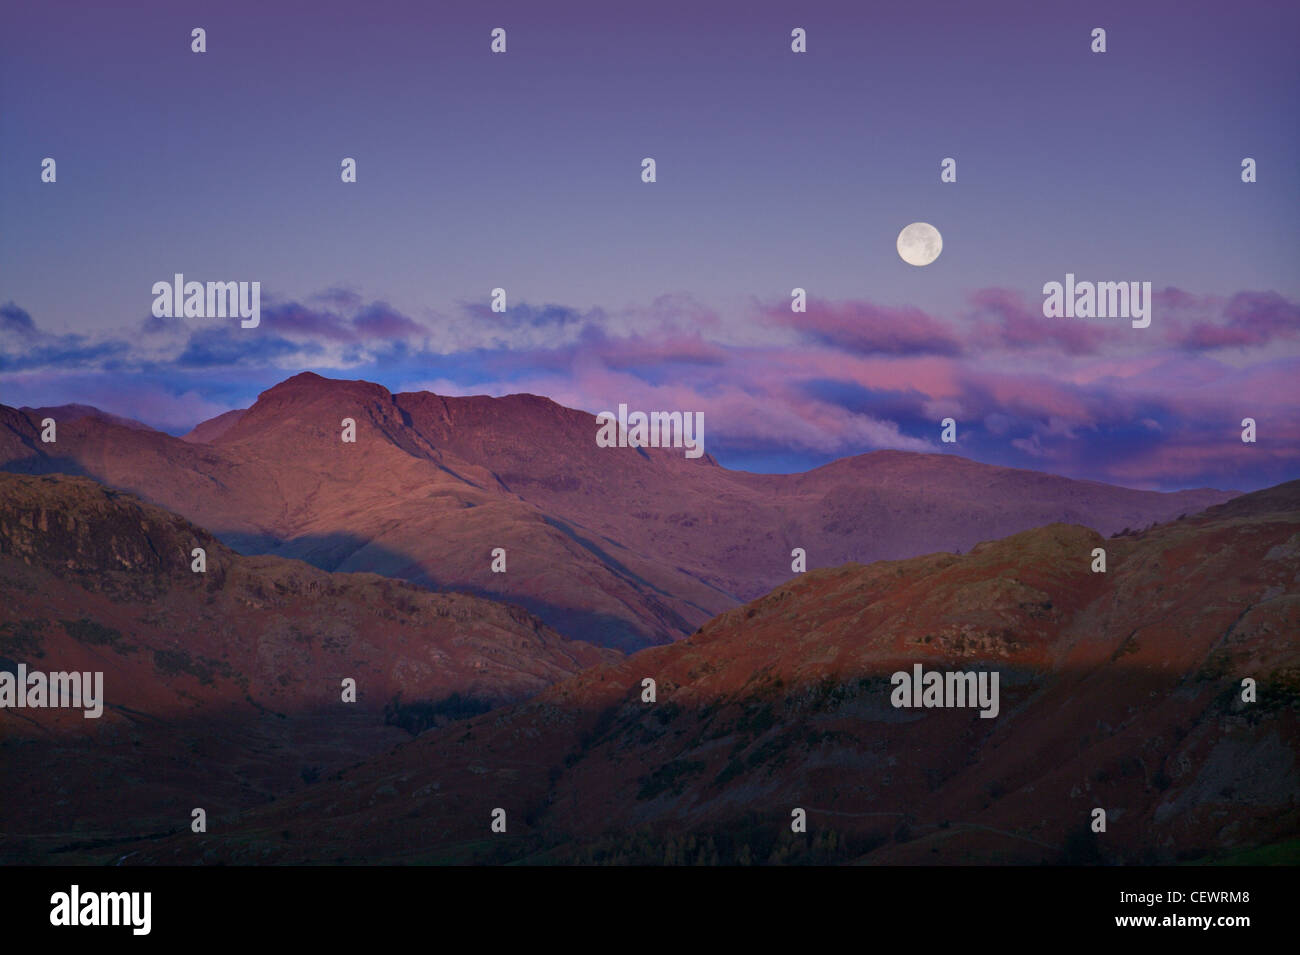 Full moon rises above the distinctive Langdale Pikes. - Stock Image